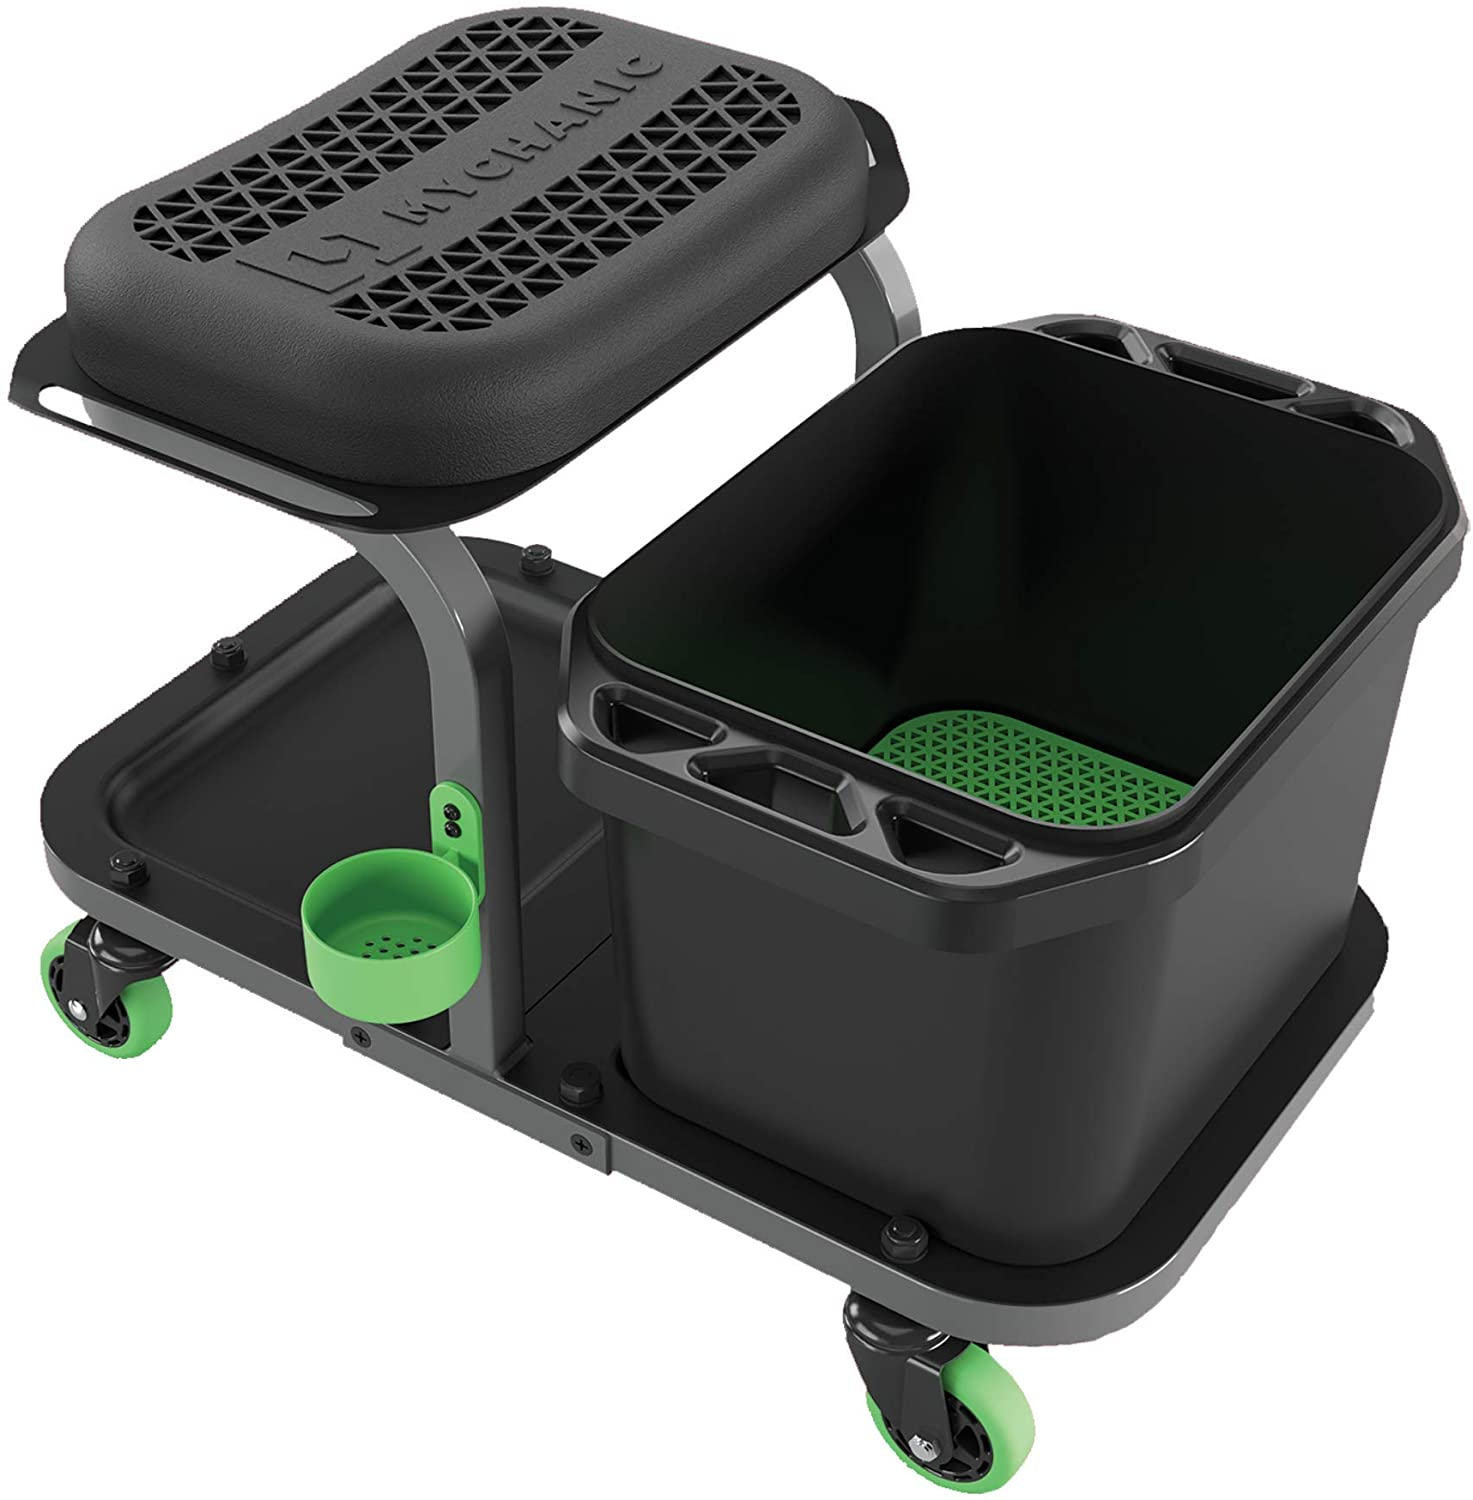 MYCHANIC Rolling Car wash Stool with Bucket Dolly - Heavy-Duty 5 Gallon Car Wash Bucket with Grit Guard - 350 Pound Capacity - Kneeling Pad - Cup Holder - Powder Coated Steel Frame: Automotive